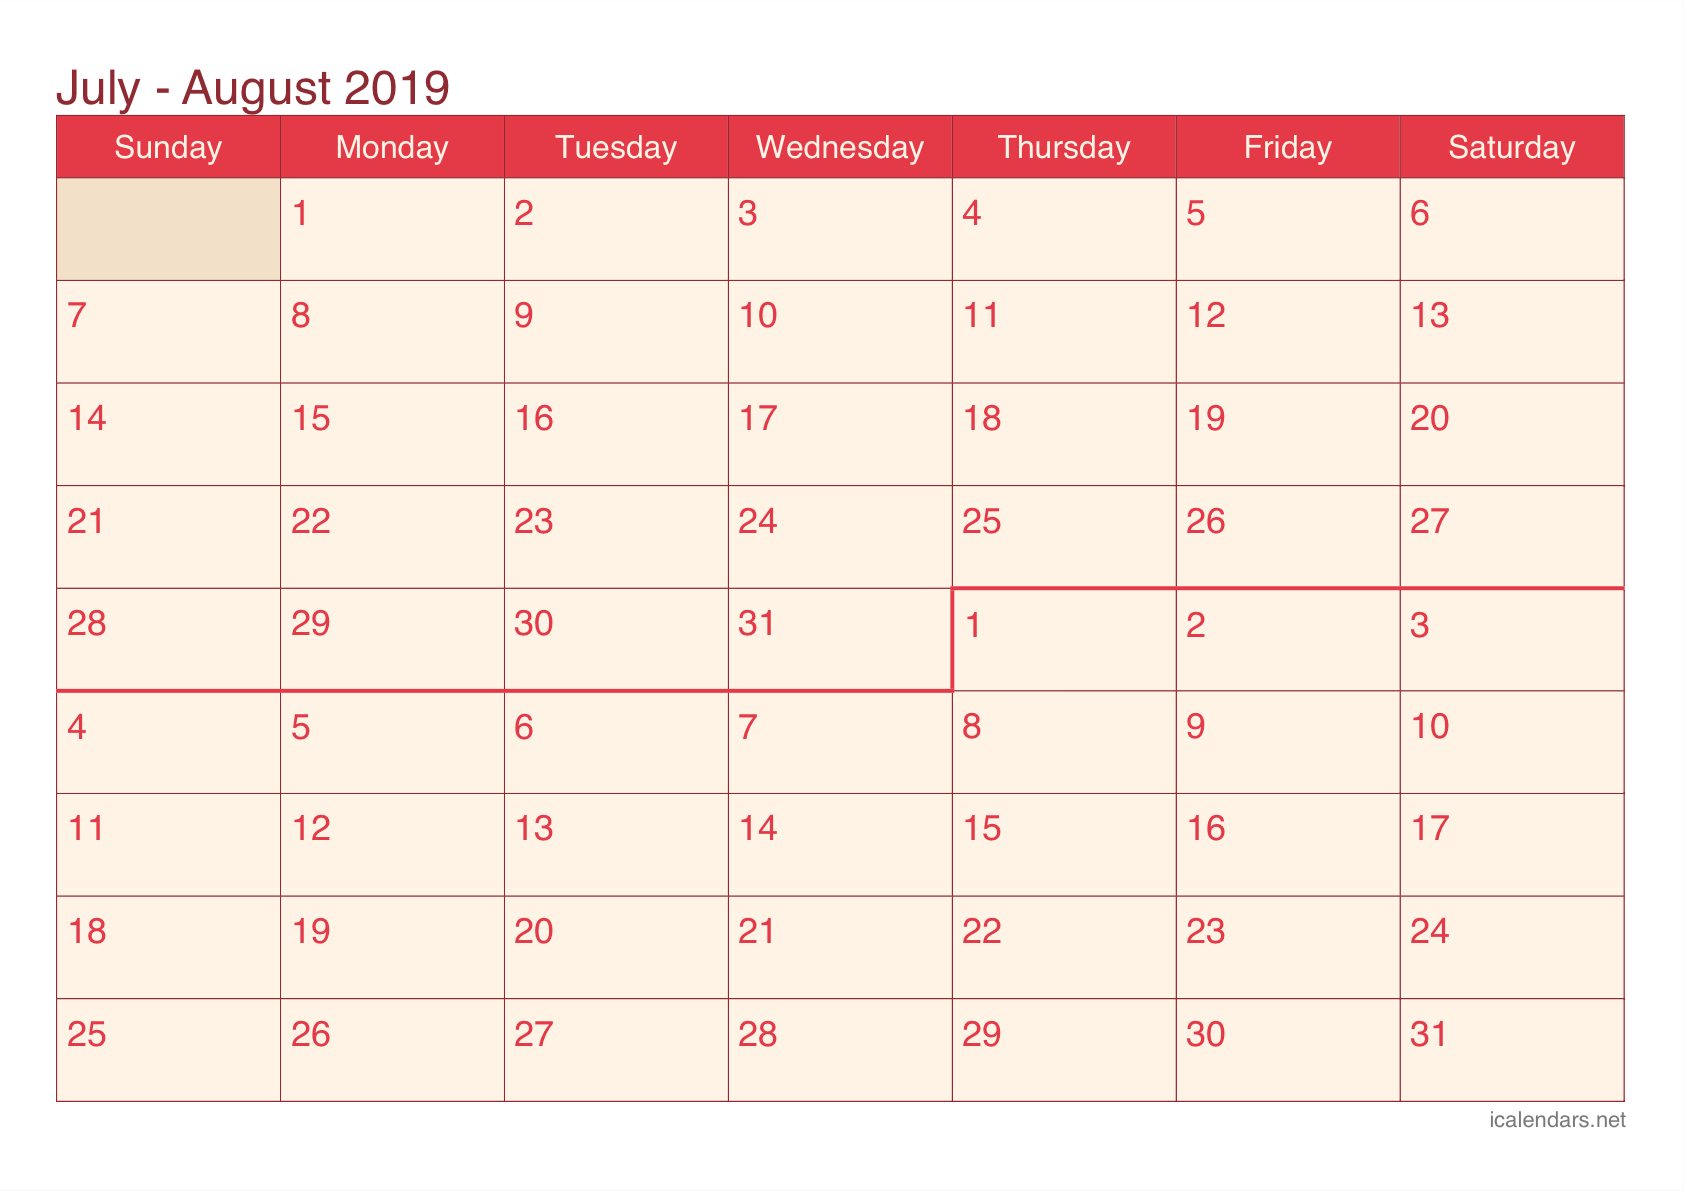 July And August 2019 Printable Calendar - Icalendars with regard to June And July Blank Calendar